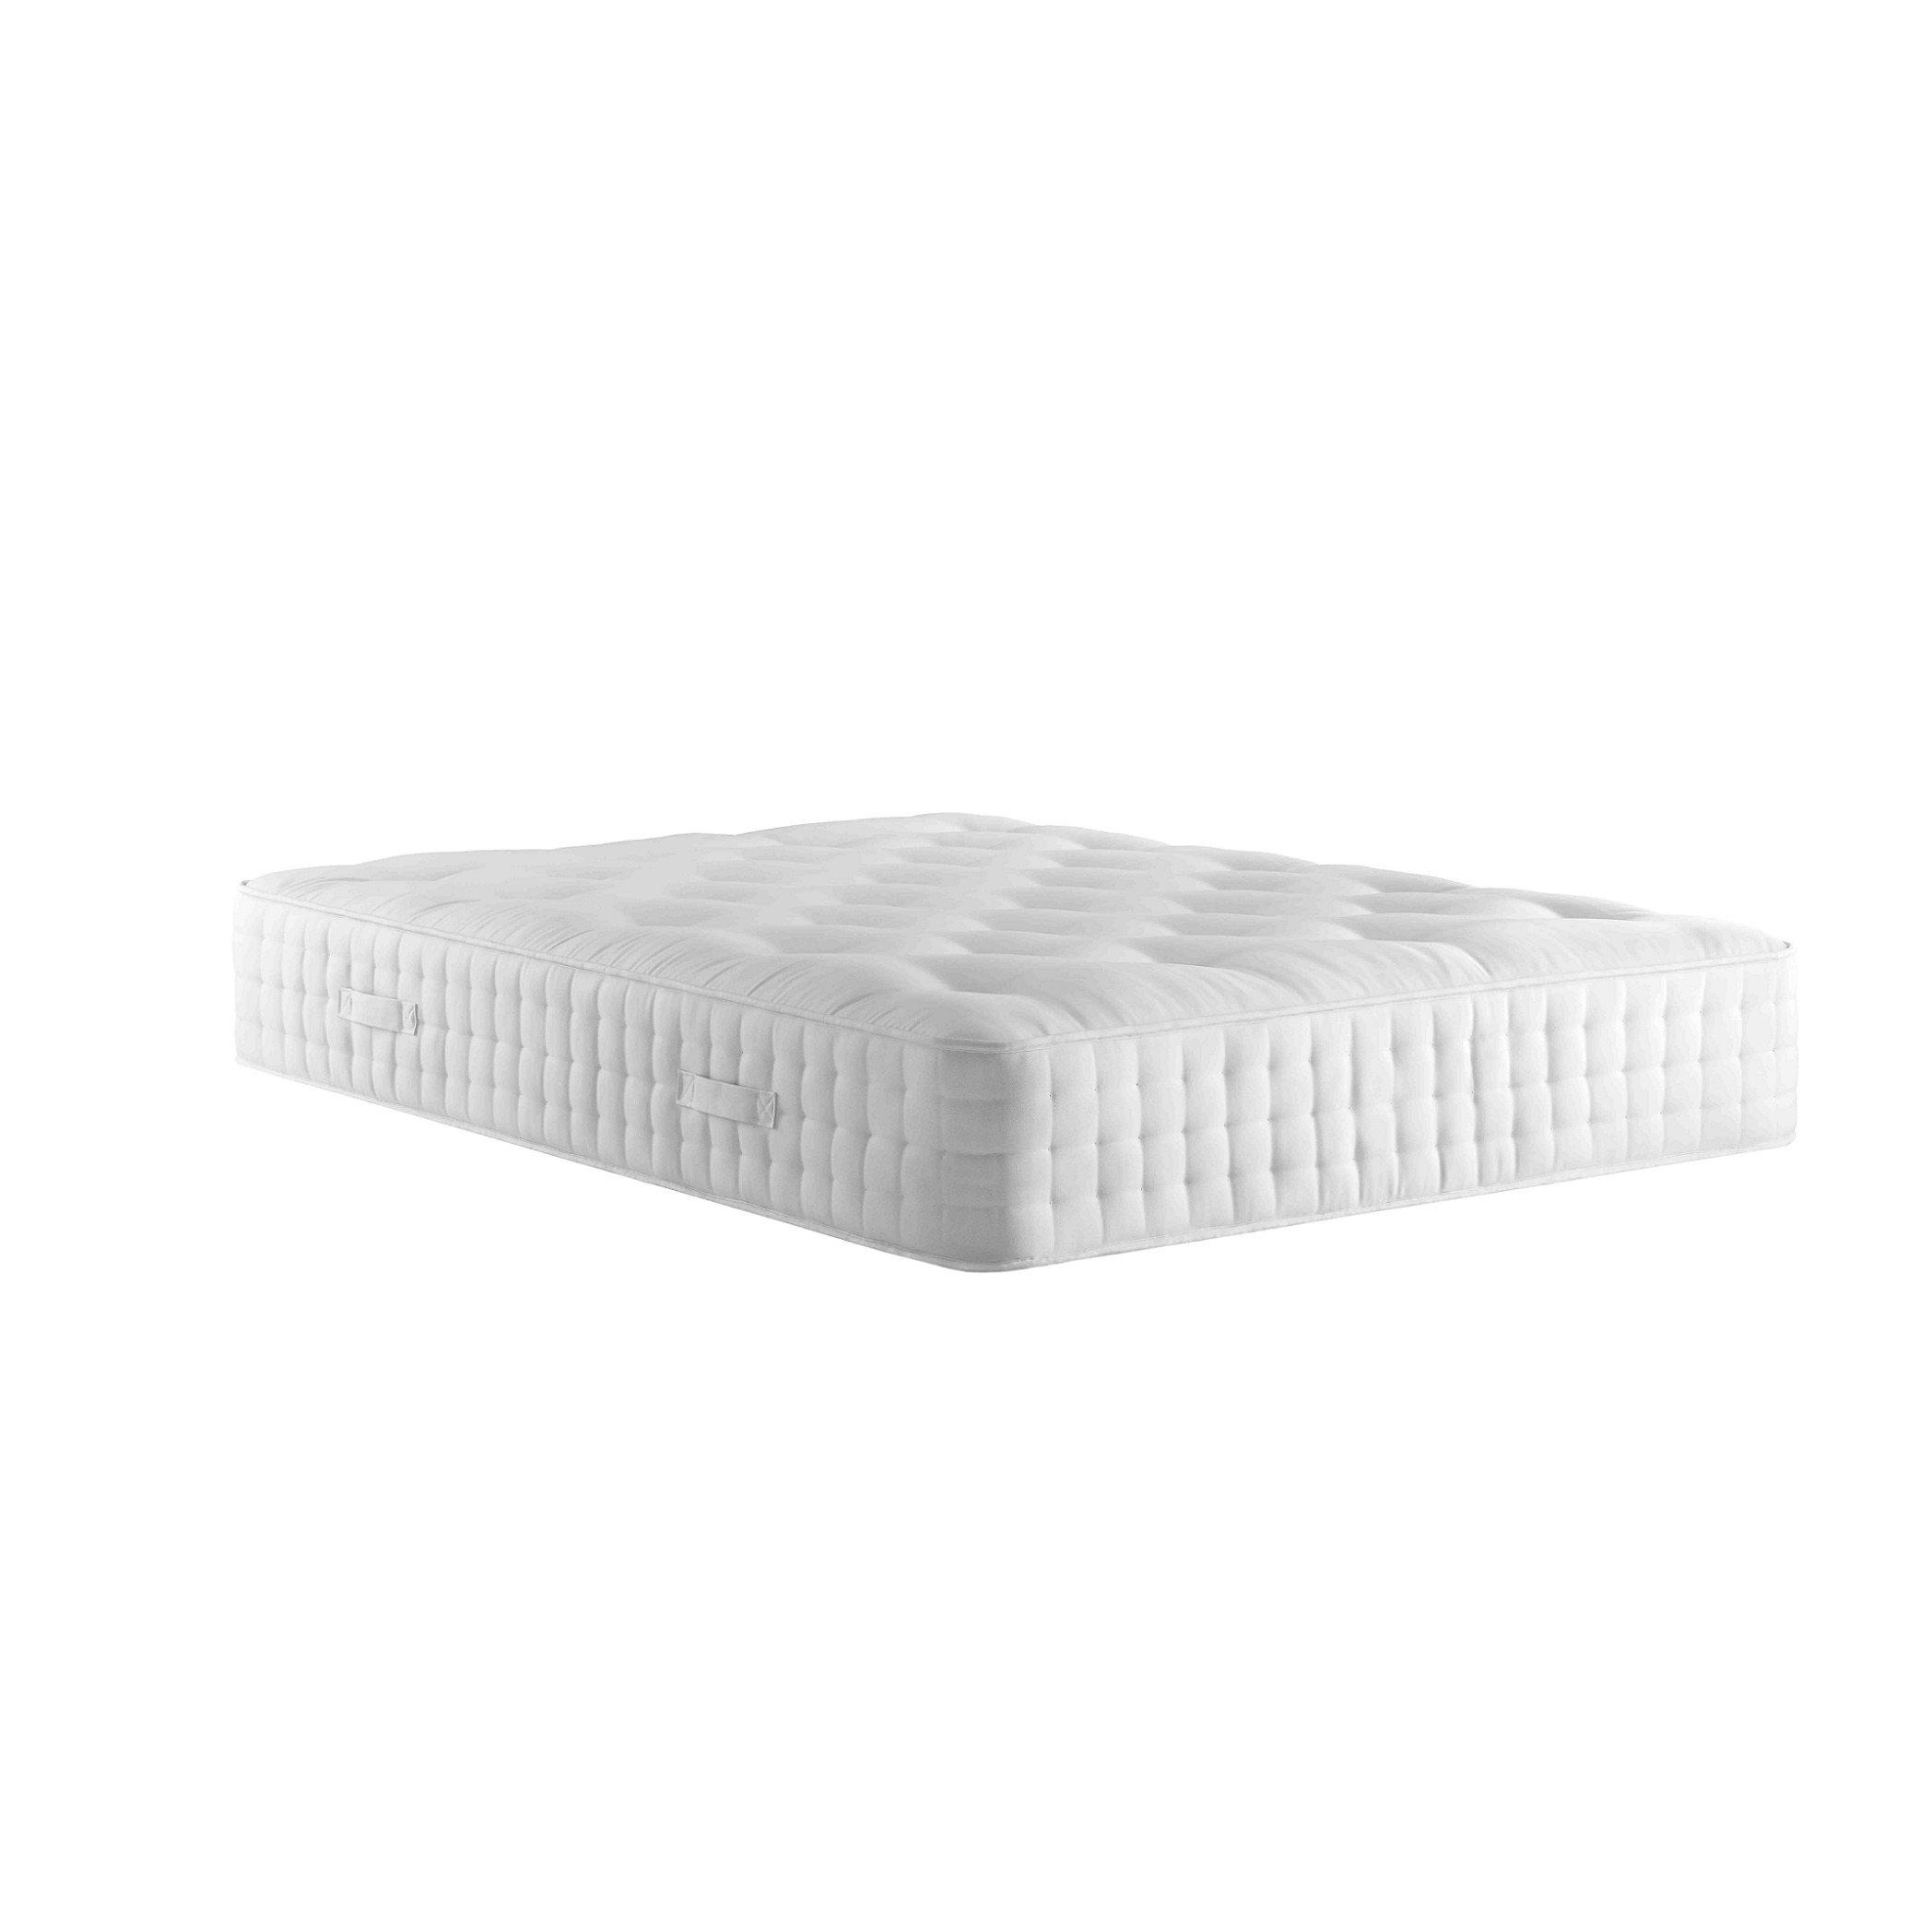 Myers Natural Comfort 1400 Pocket Sprung Silk Alpaca Bamboo Fillings Mattress